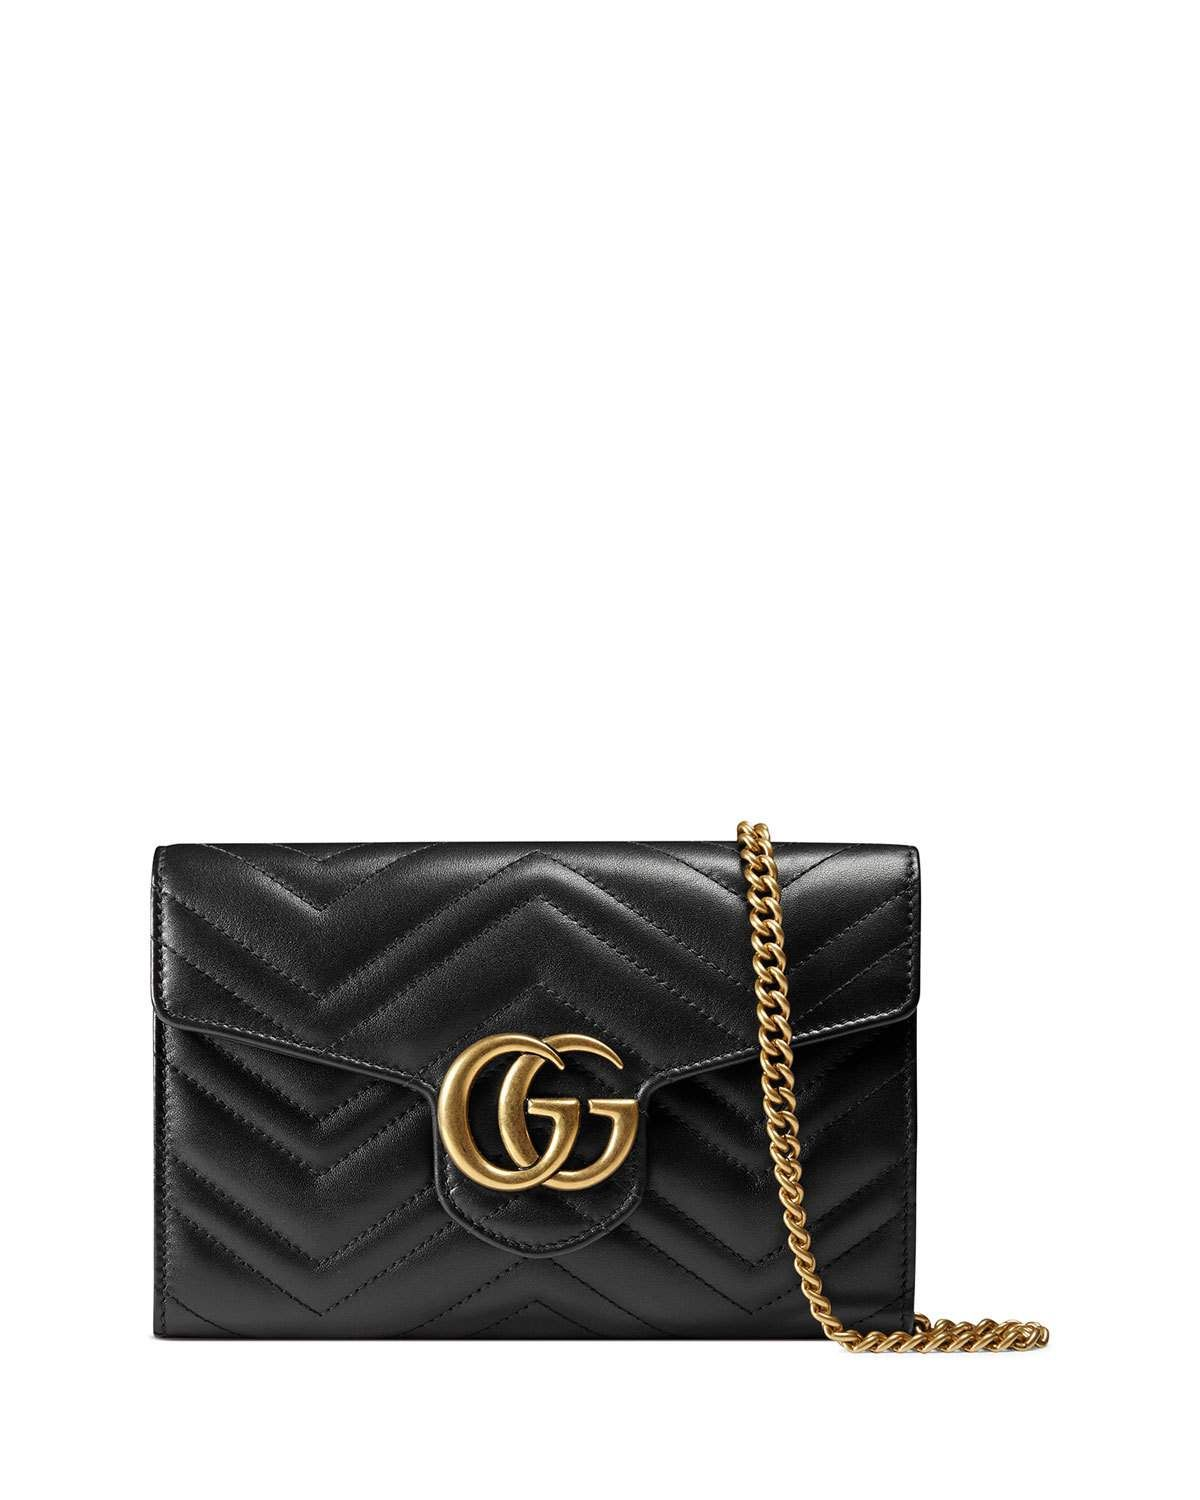 83f181b821cf Gucci GG Marmont Matelassé Mini Bag, Black | lust list // | Bags ...